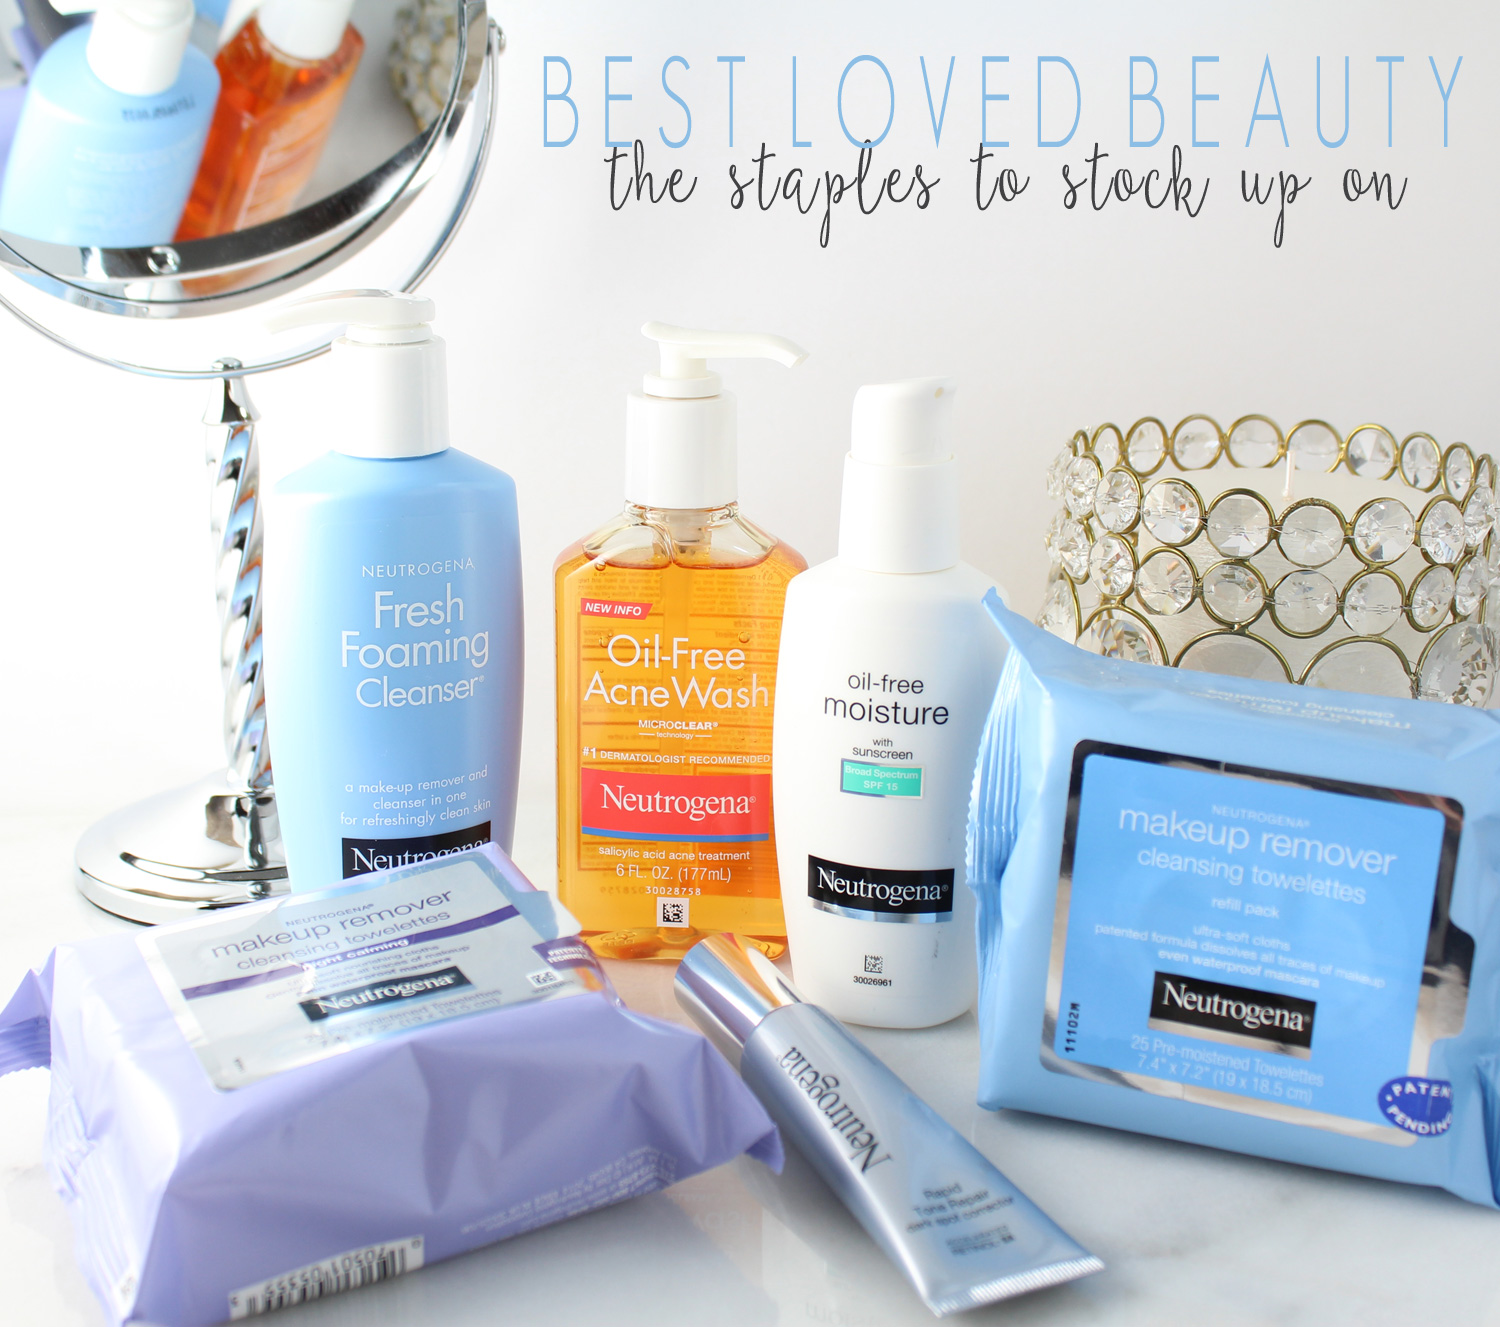 Best Loved Beauty: The beauty products to stock up on at Target